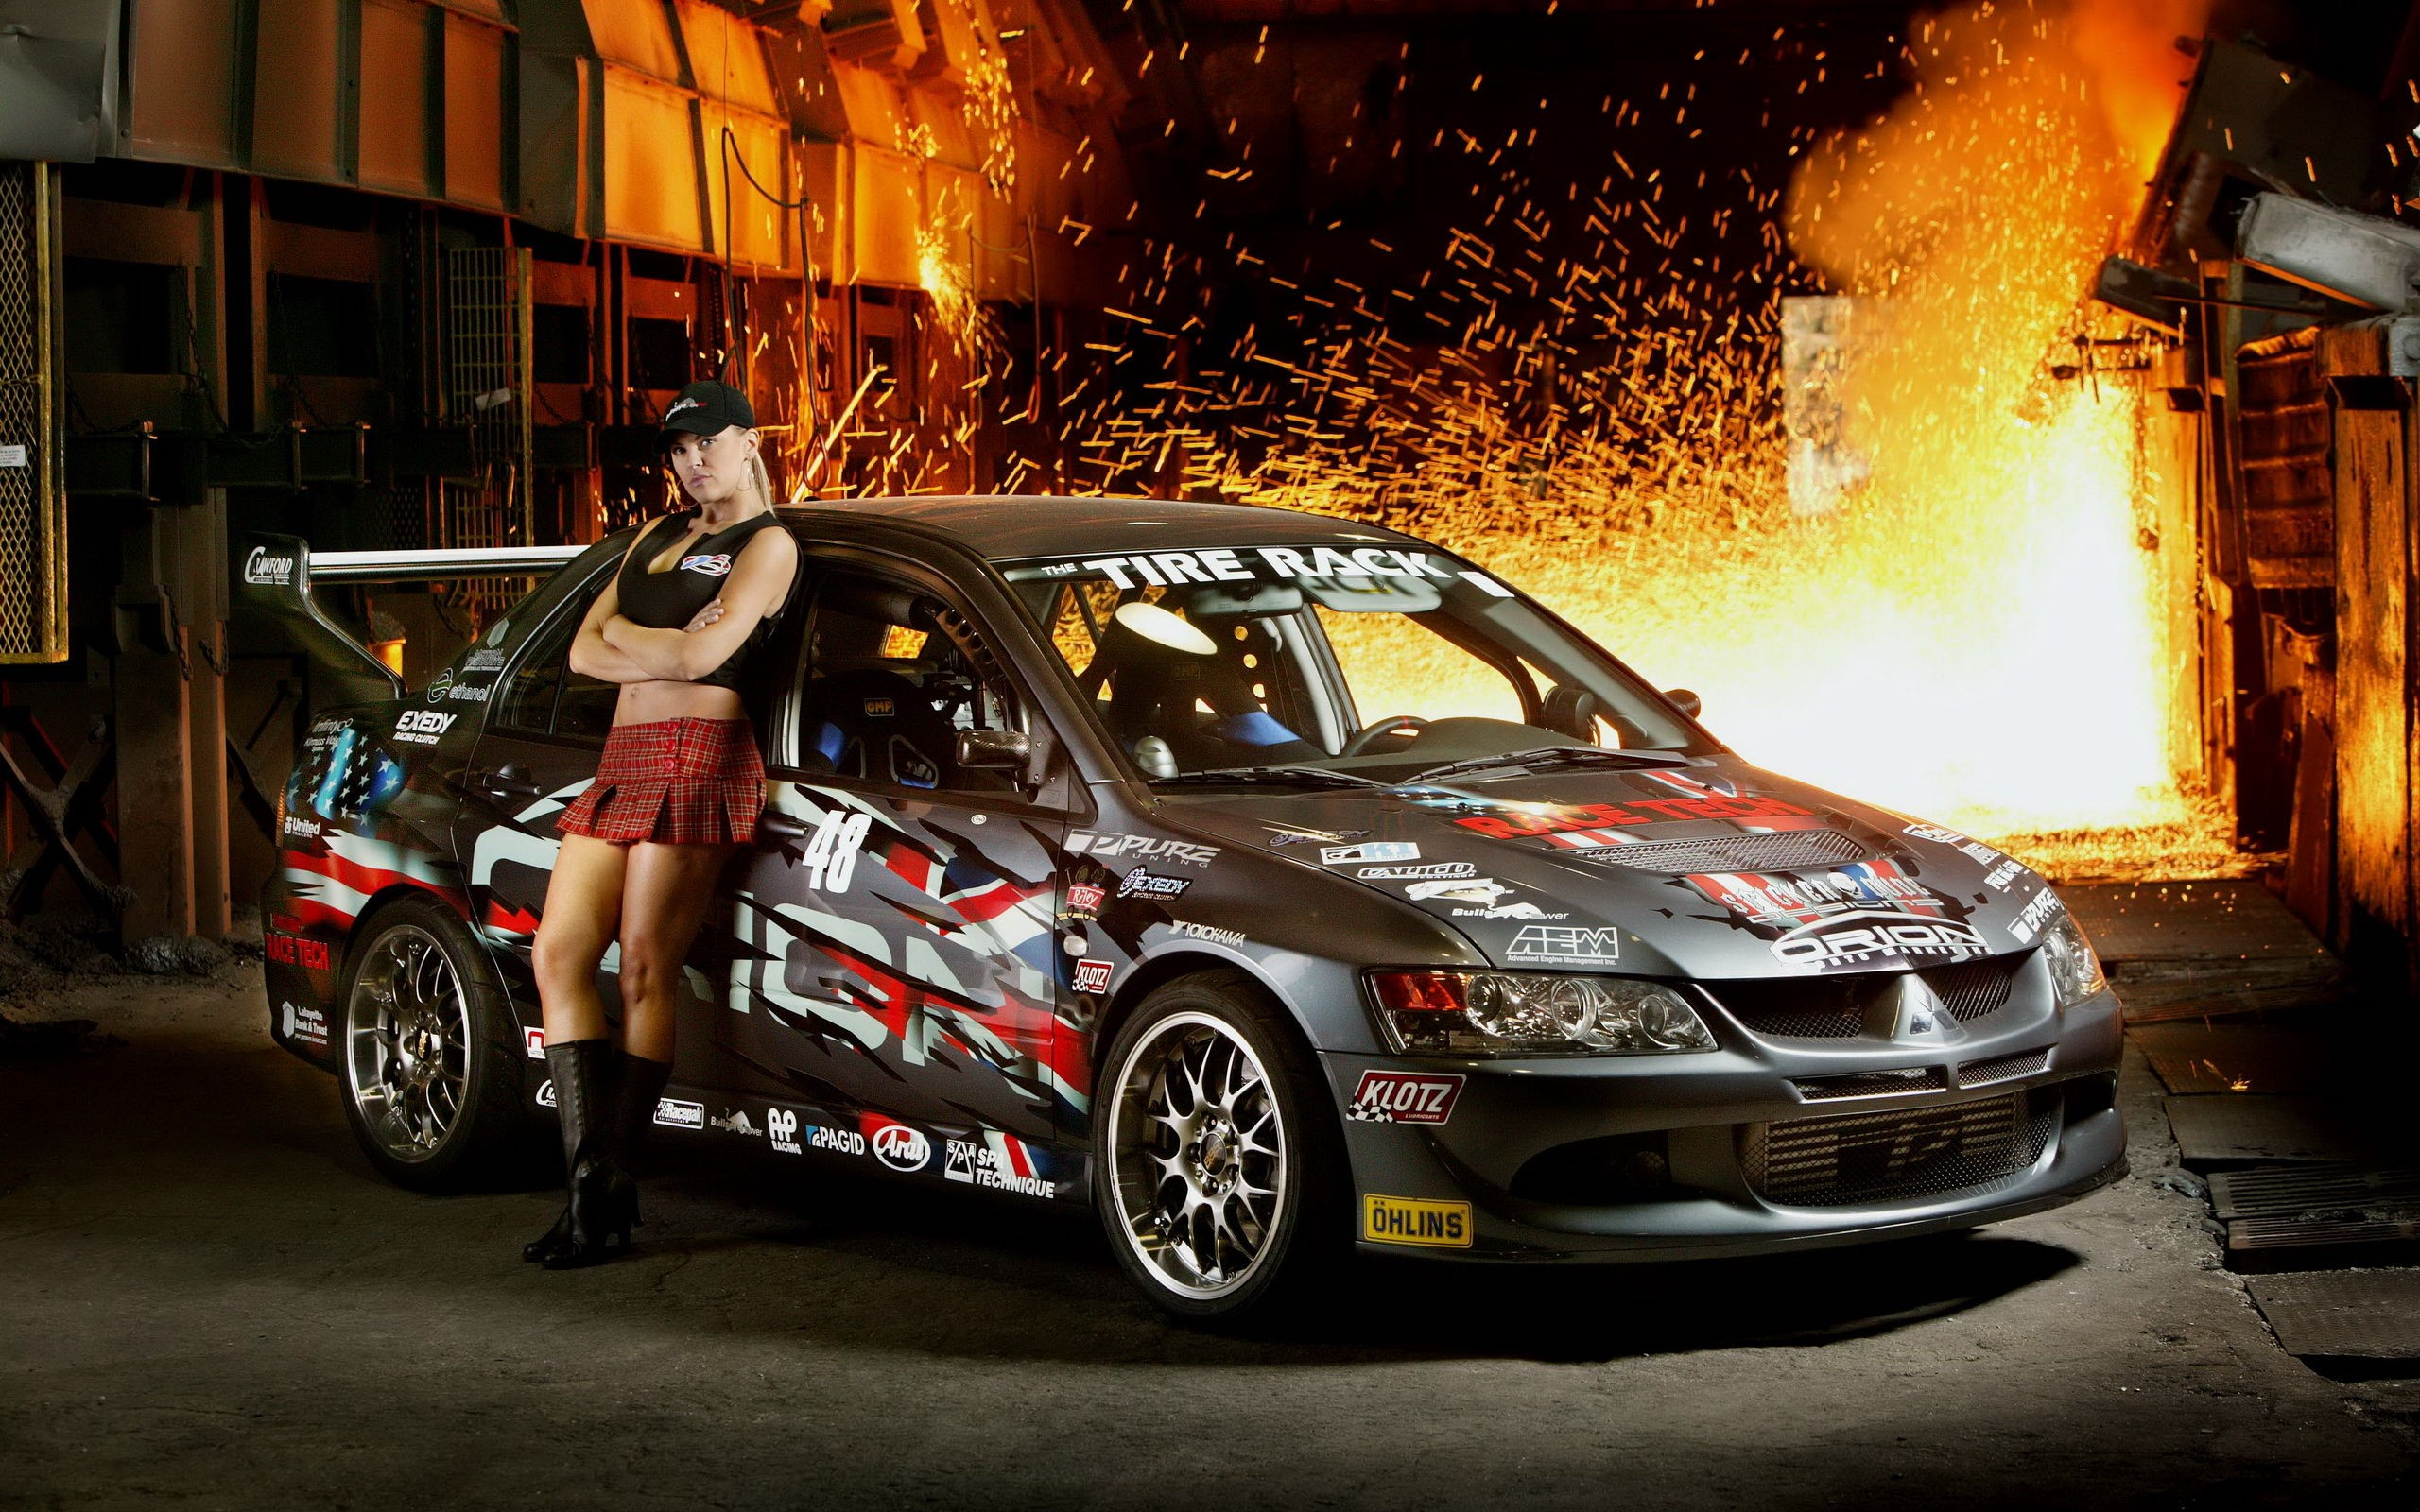 Girl And Car Full Screen High Definition Wallpaper Images Download Desktop Images Abstract Best 2560x1600 The Wallpaper